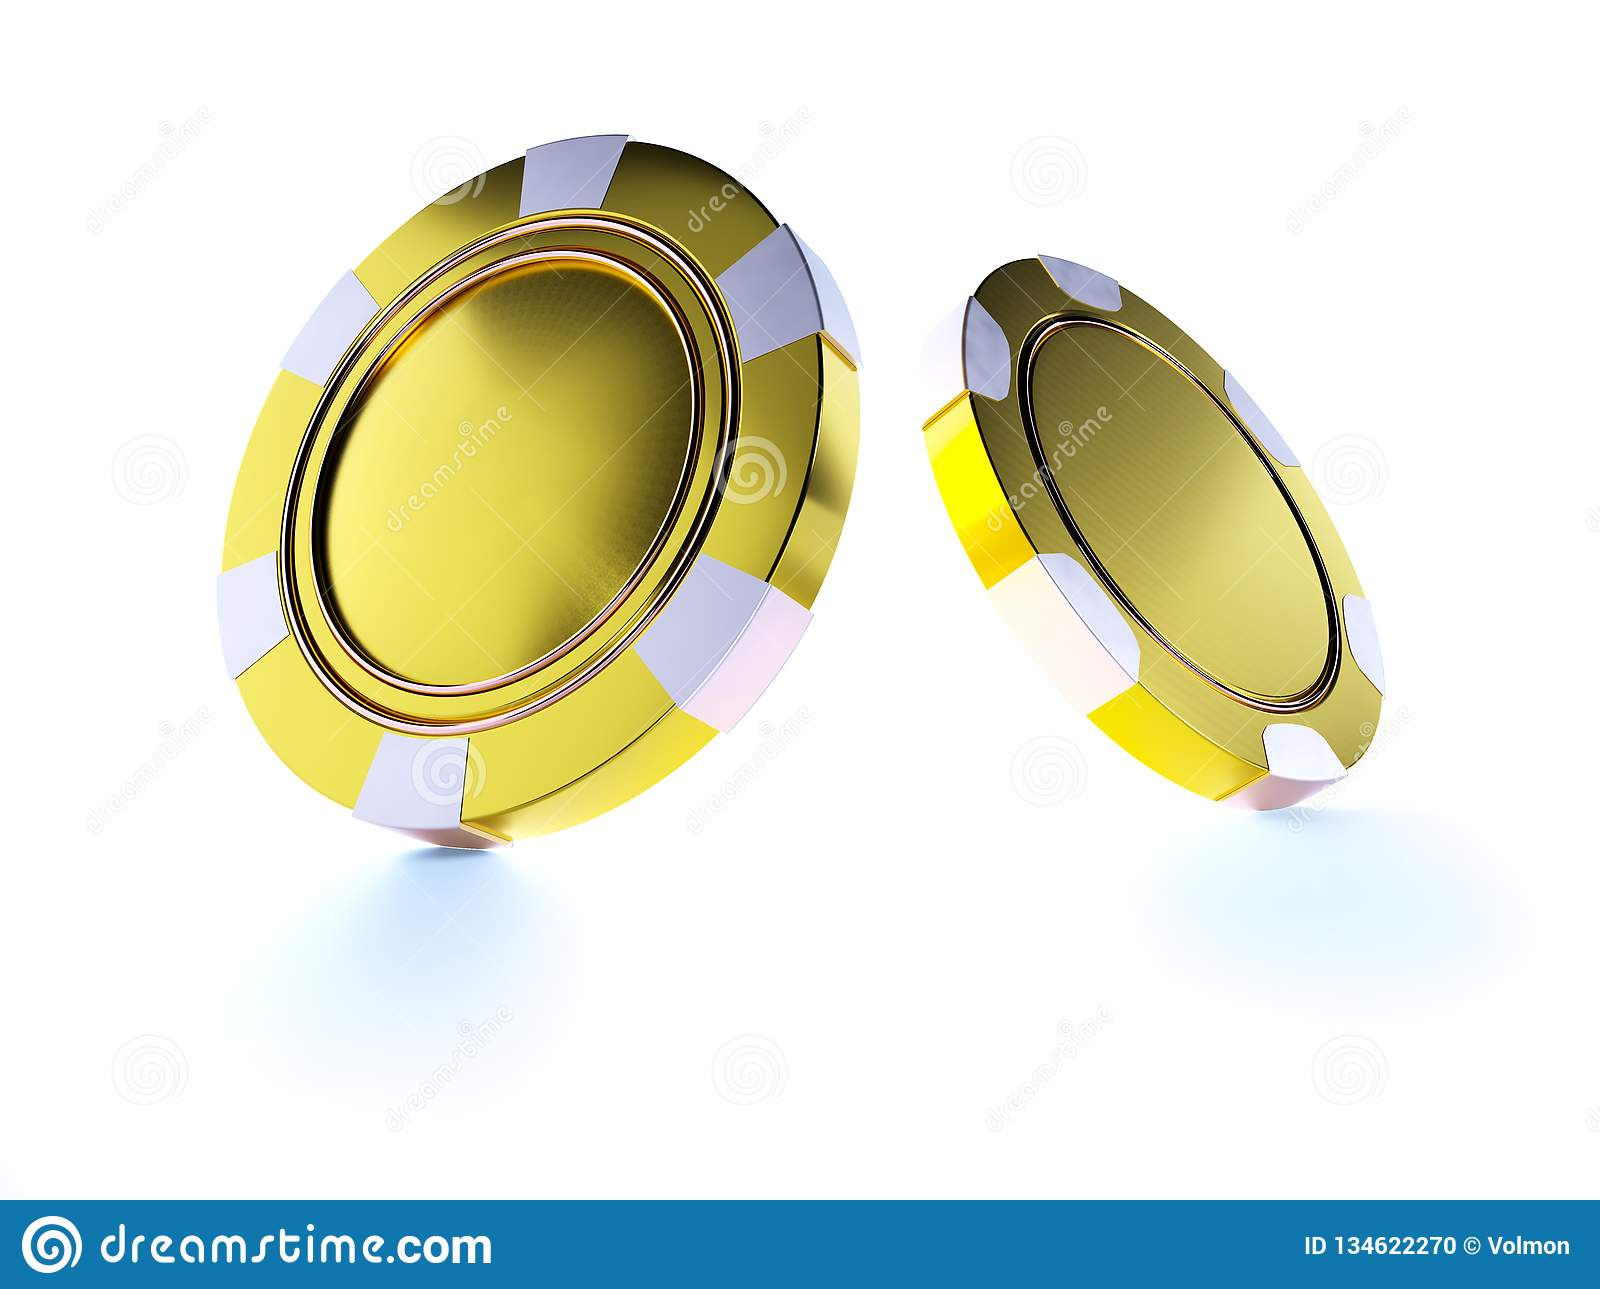 Golden Casino Chips Isolated On White  Casino Game 3D Chips  Online